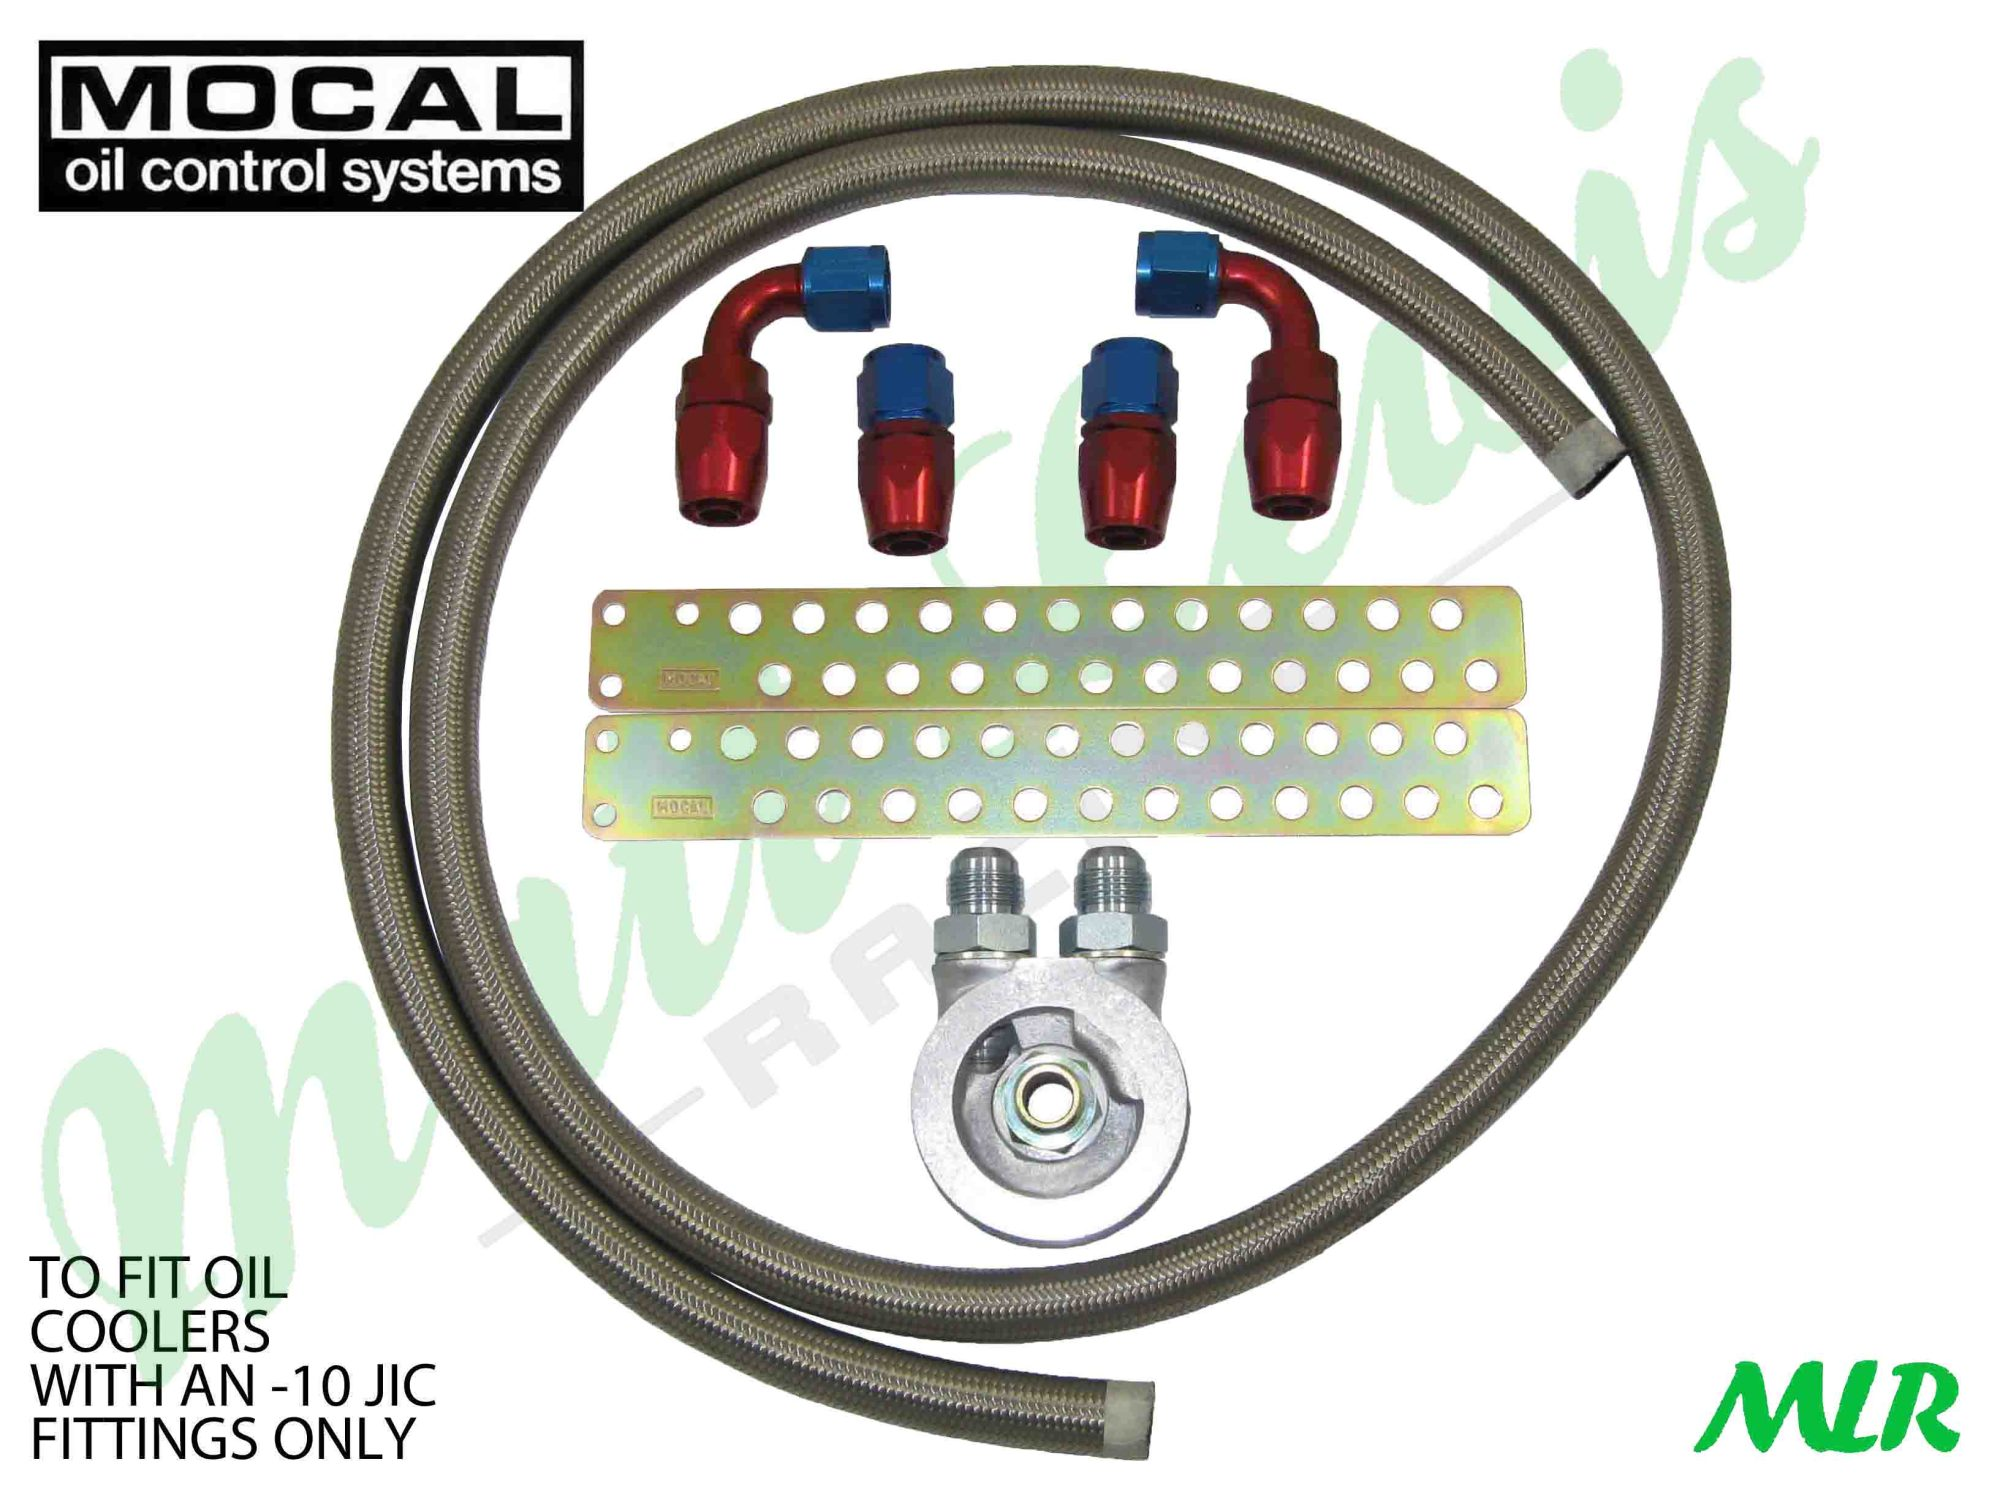 hight resolution of mocal an 10 jic stainless steel braided hose oil cooler fitting kit audi tt a3 s3